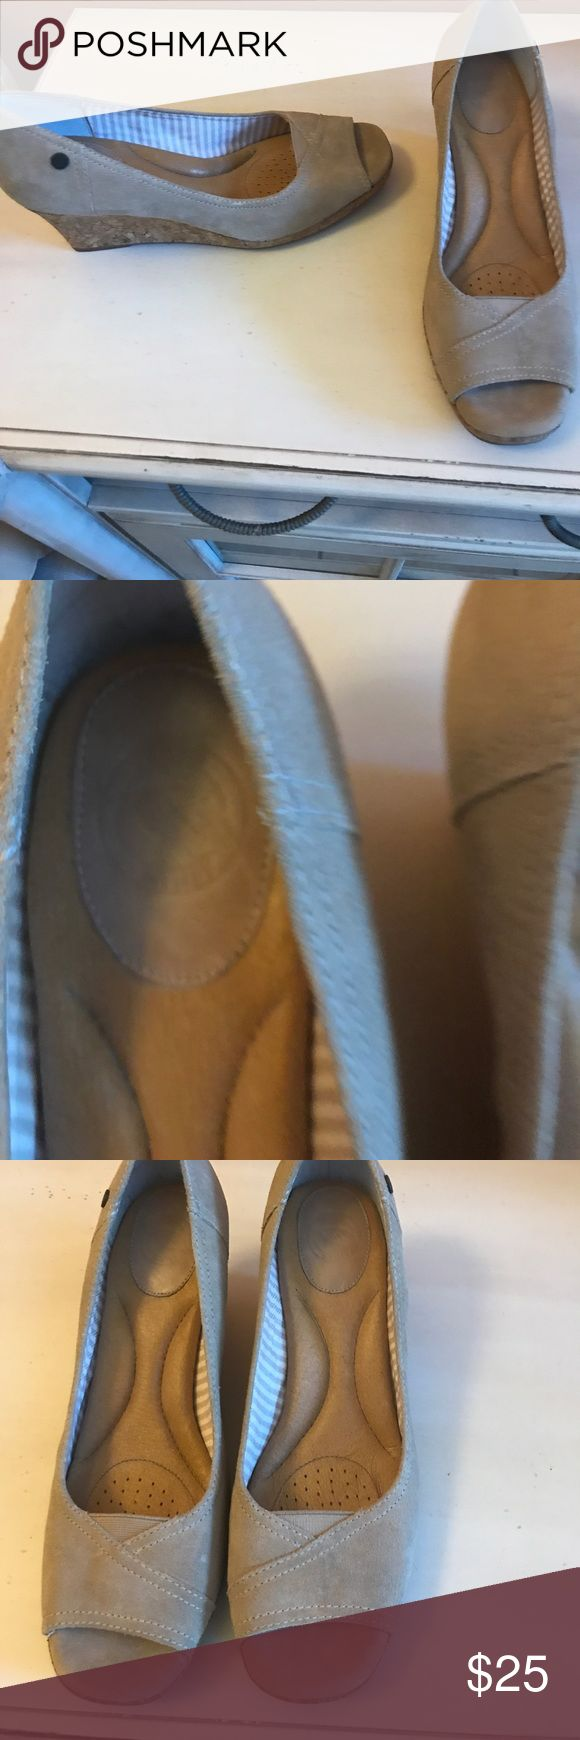 NWOT nude Wedges by nurture, size 10 NWOT nature suede nude Wedges, perfect for every outfit & super comfortable. Size 10, purchased at Dillard's. nurture Shoes Wedges